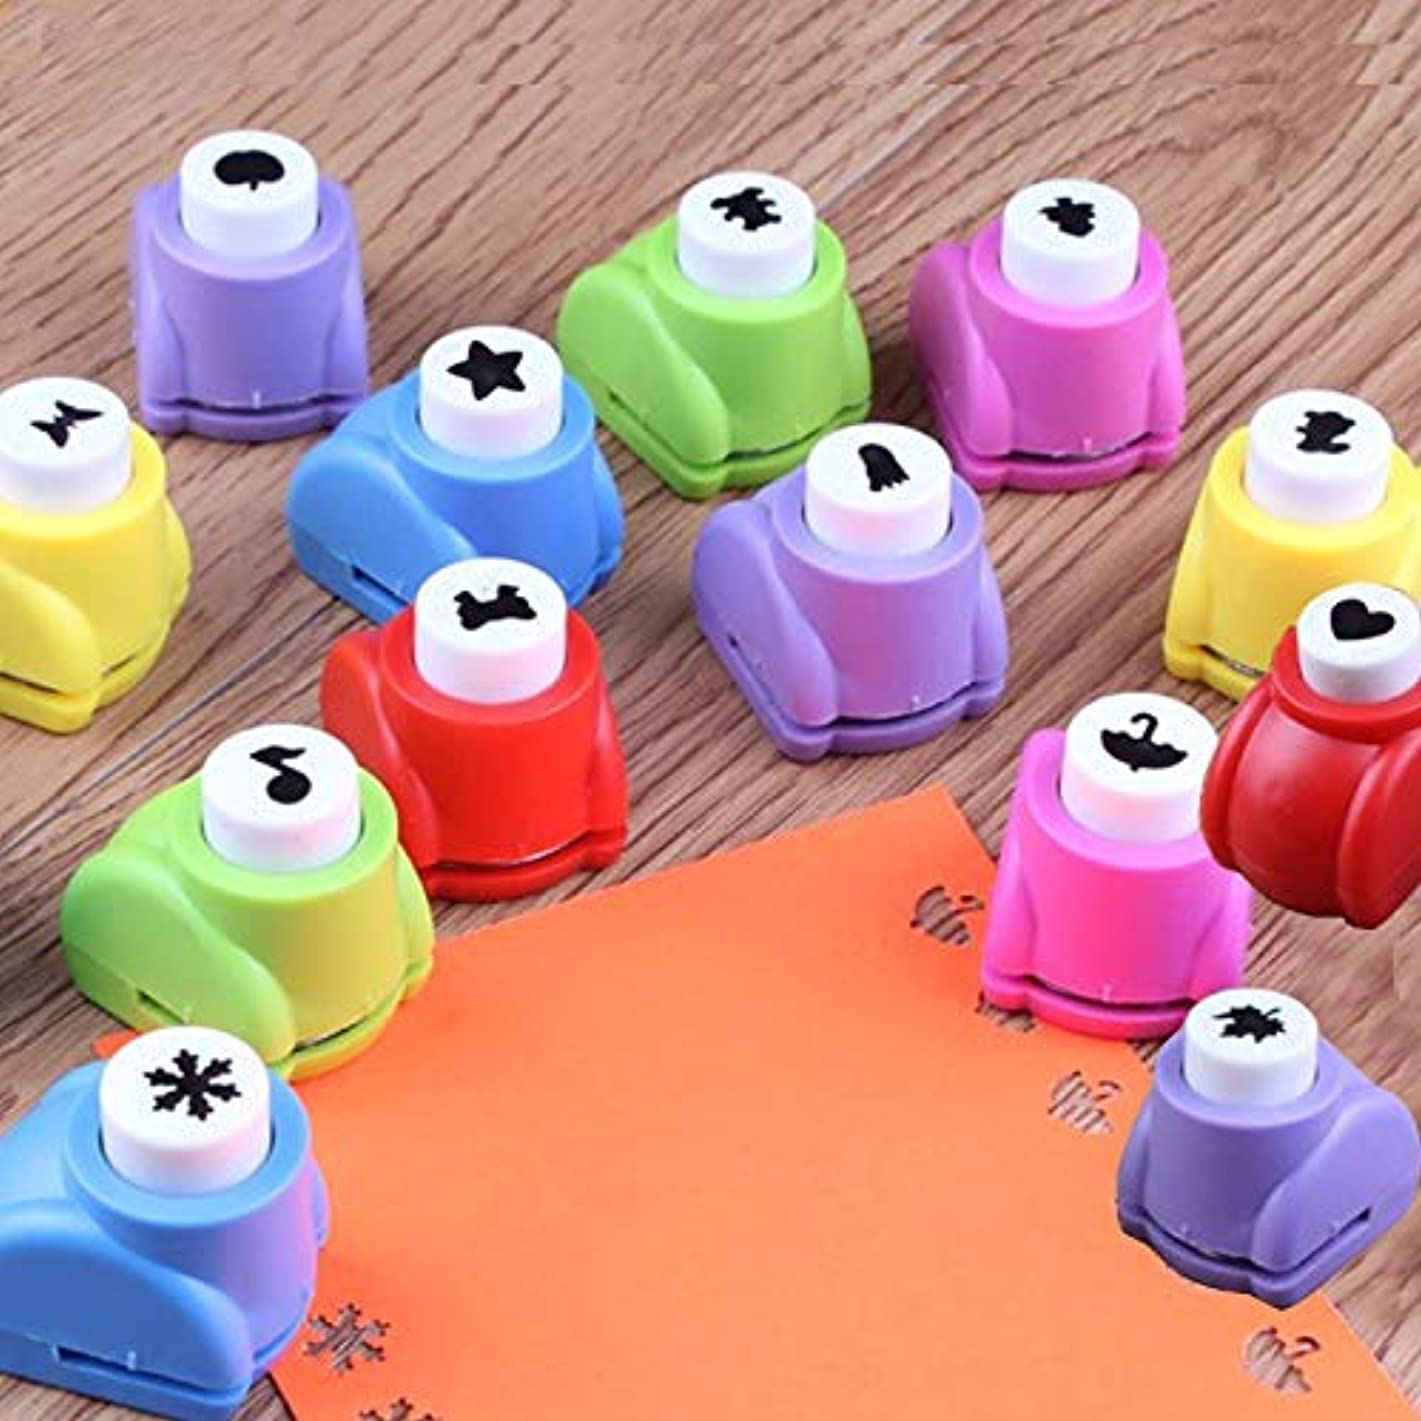 Fascola 13Pcs Christmas Tree Snowflake Paper Punch Scrapbooking Punches Handmade Hole Puncher Hand Press Shapes Craft Printing Shaper Puncher Random Shape Valentine's Day Gifts